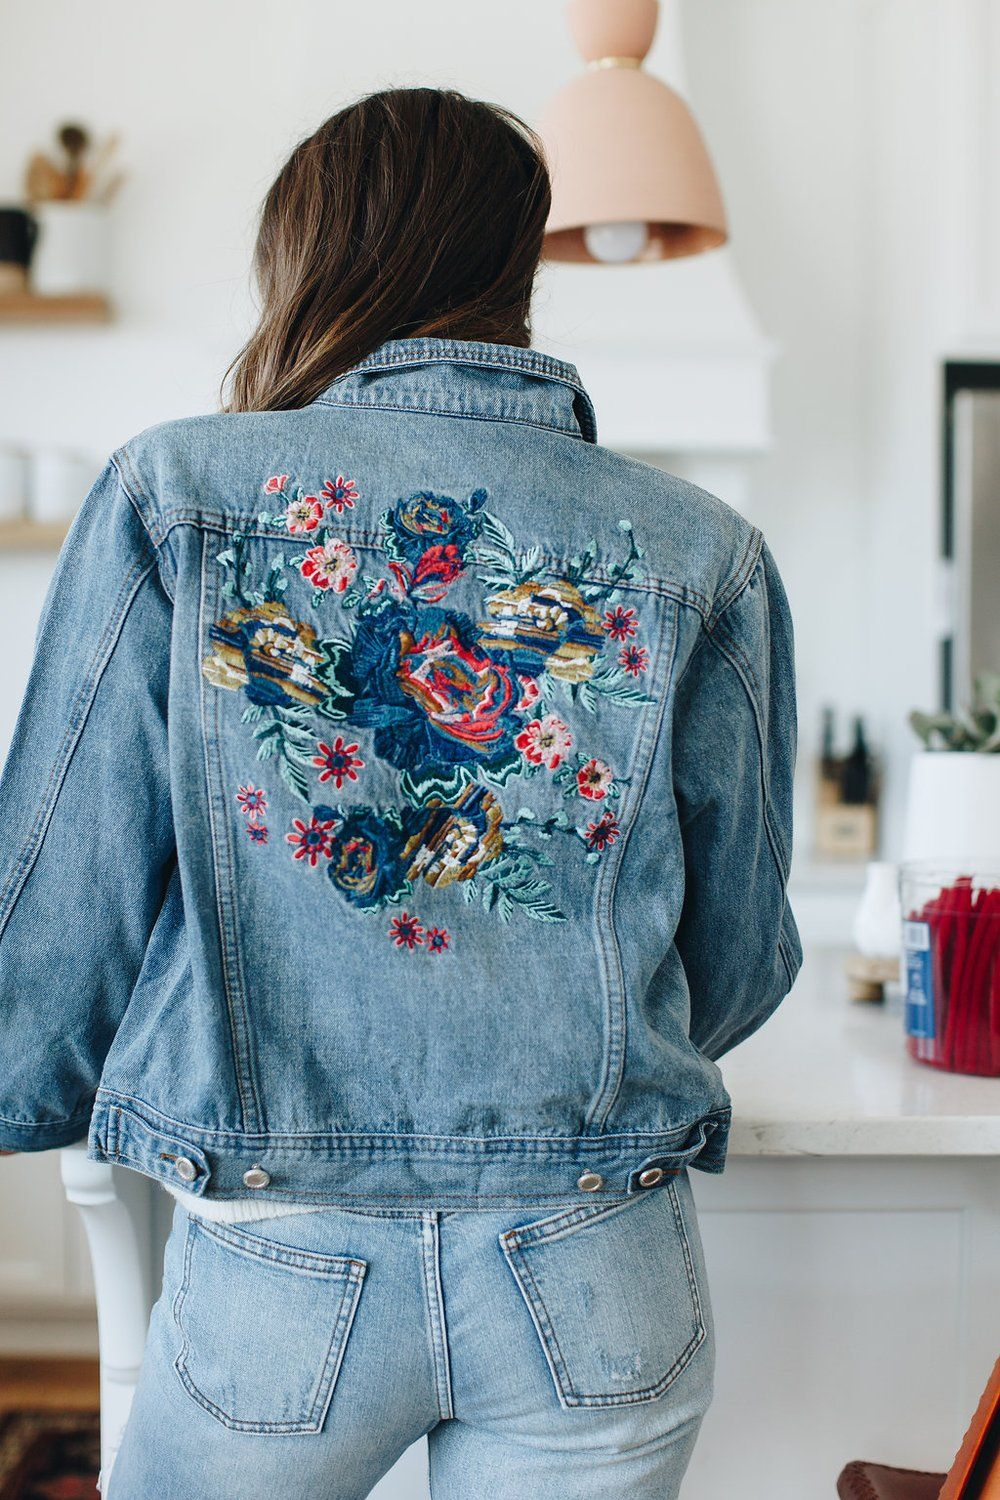 Blue Denim Jacket With Floral Embroidered Details On Back And Front Pockets Available In Embroidered Denim Jacket Embroidered Denim Denim Jacket Embroidery [ 1500 x 1000 Pixel ]